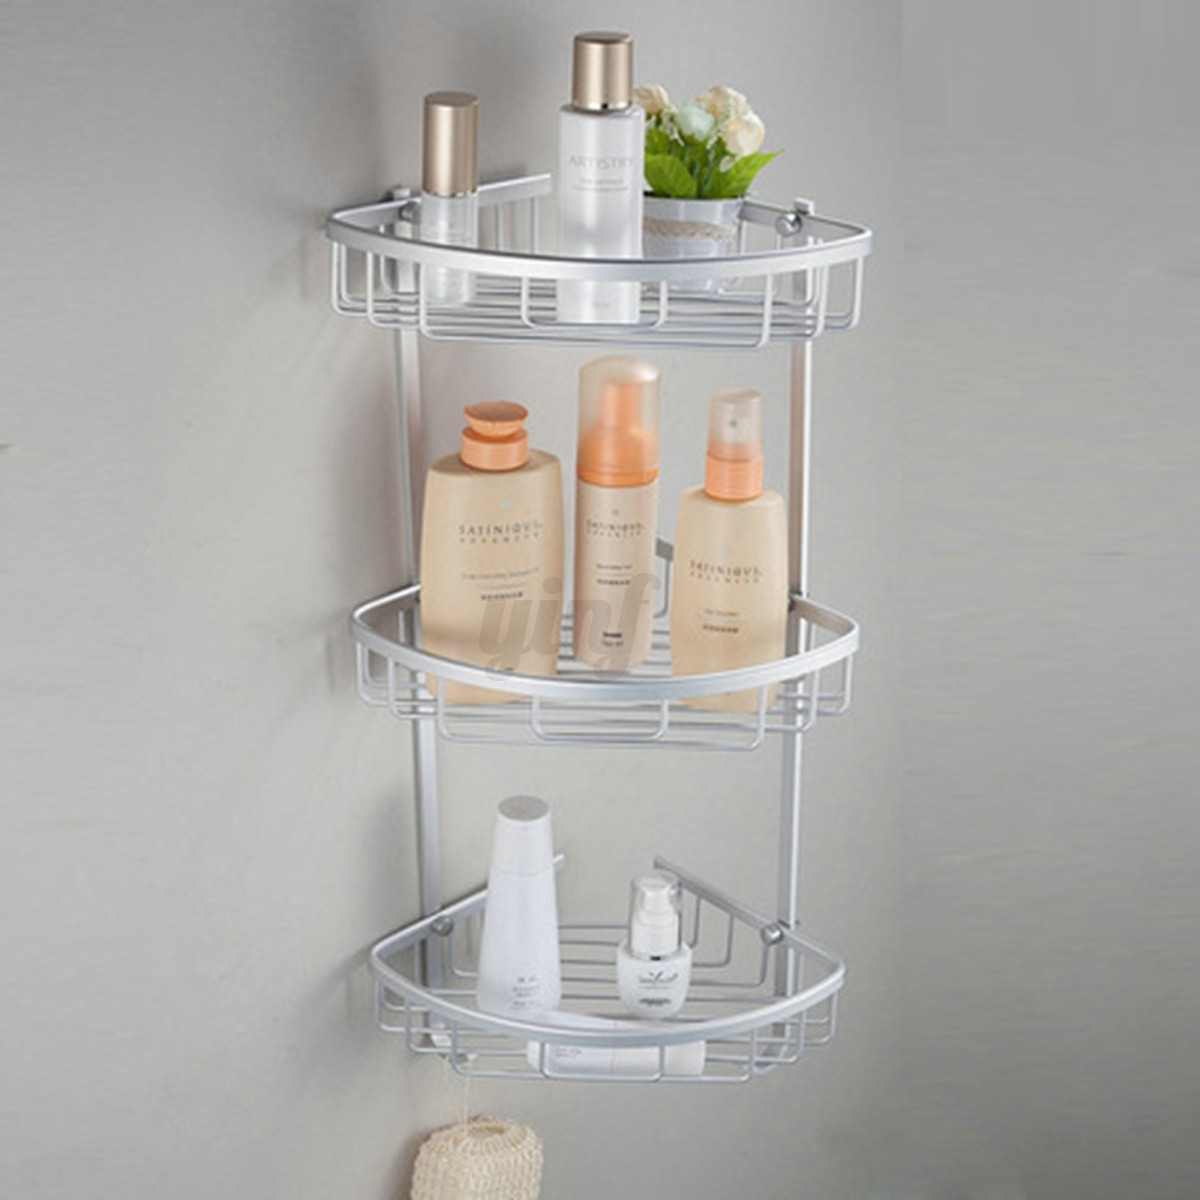 1 3 tier shower bathroom shelf corner rack organiser caddy - Bathroom storage baskets shelves ...